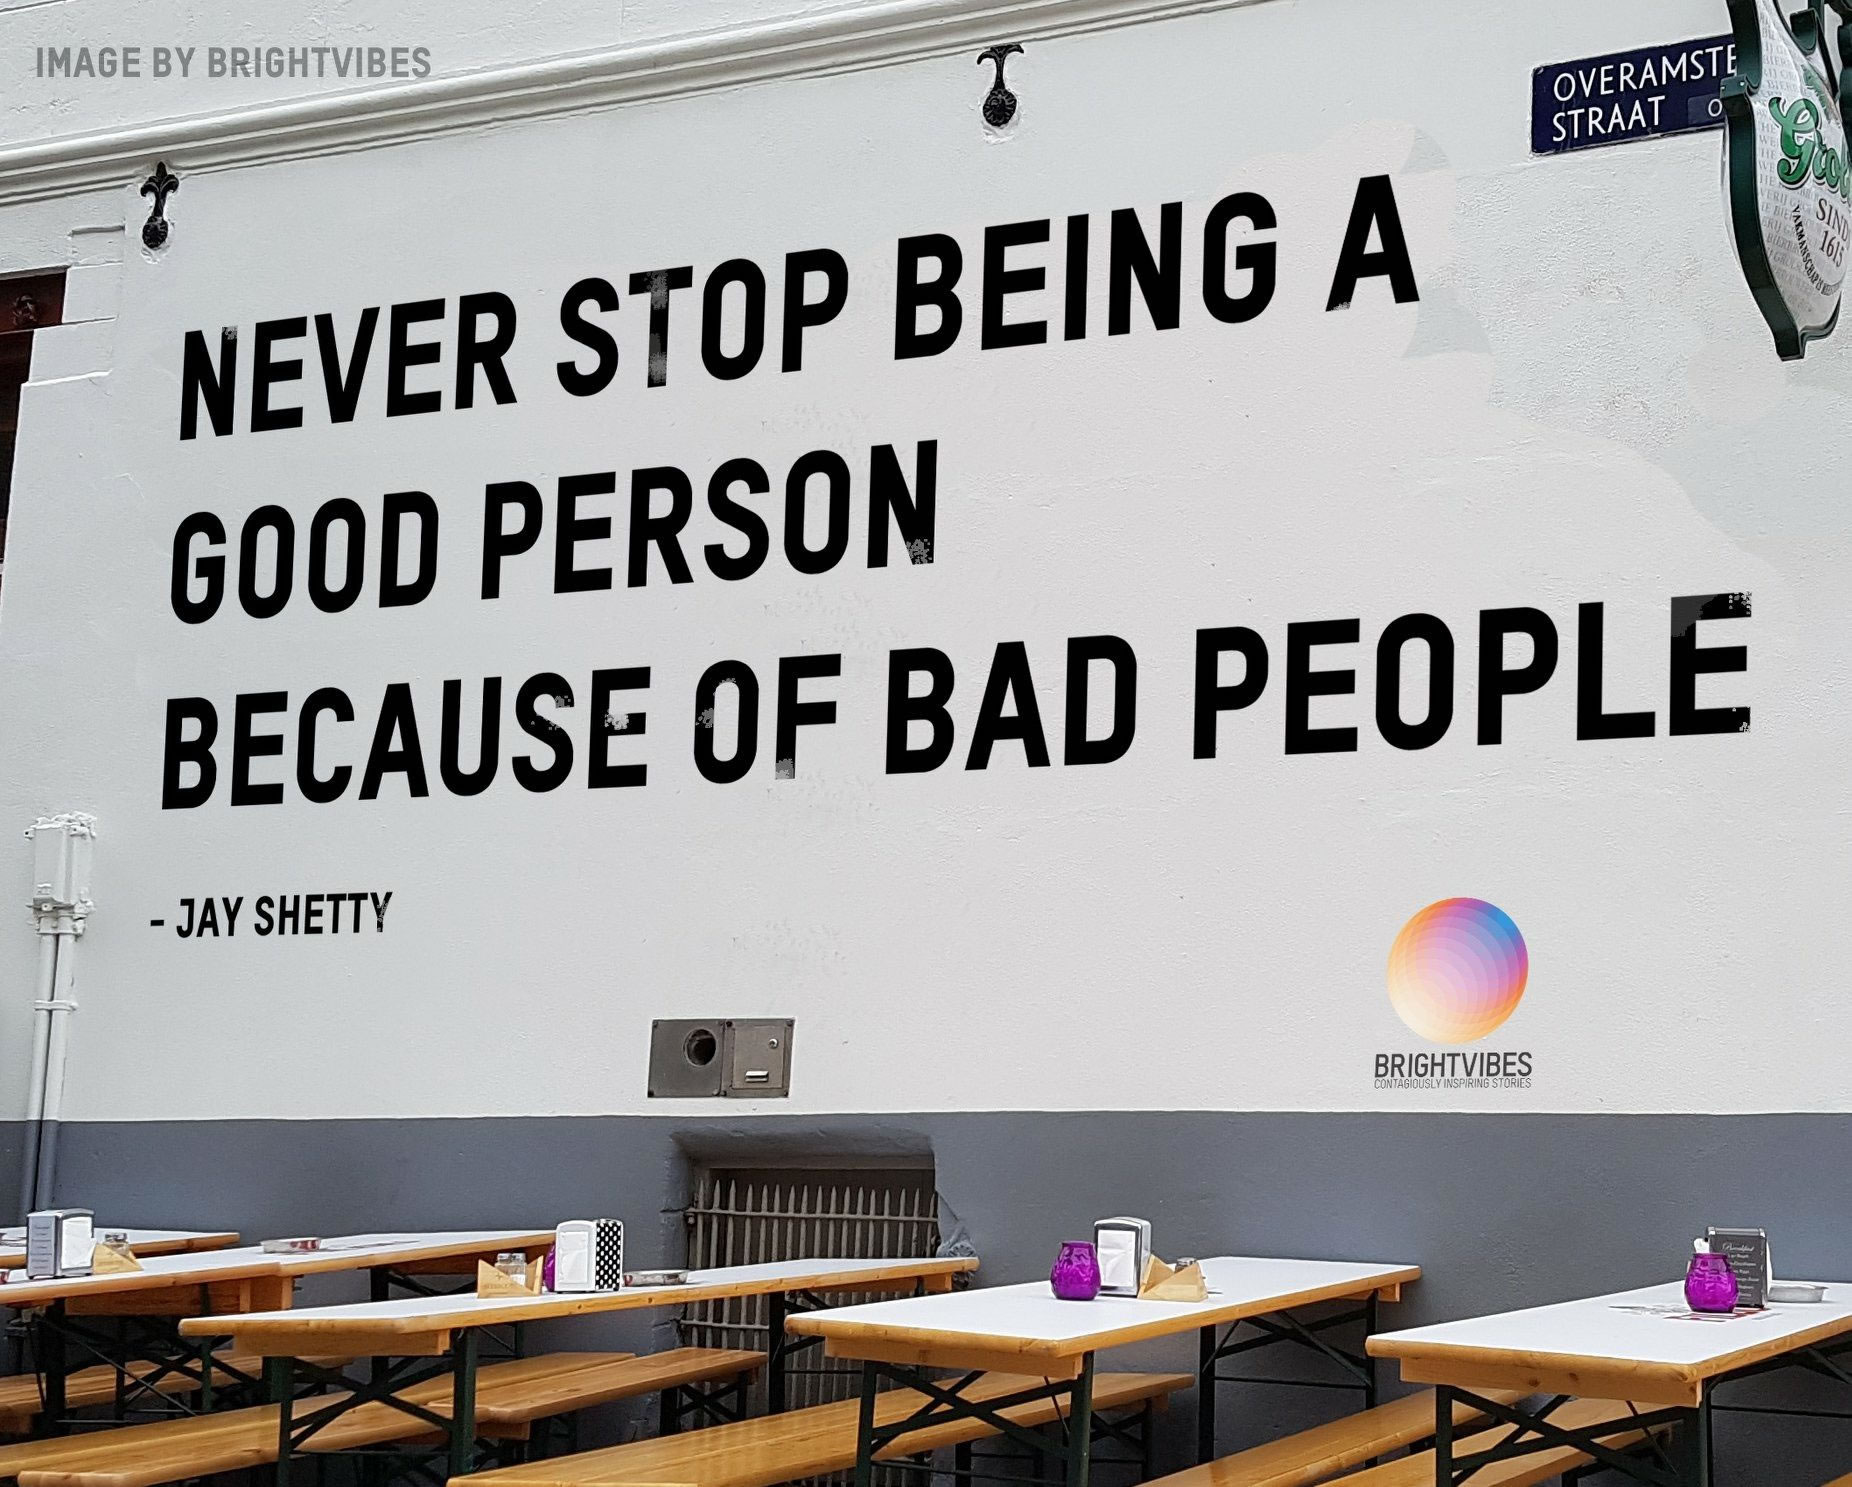 Giant wall mural: 'Never stop being a good person because of bad people. -- Jay Shetty'